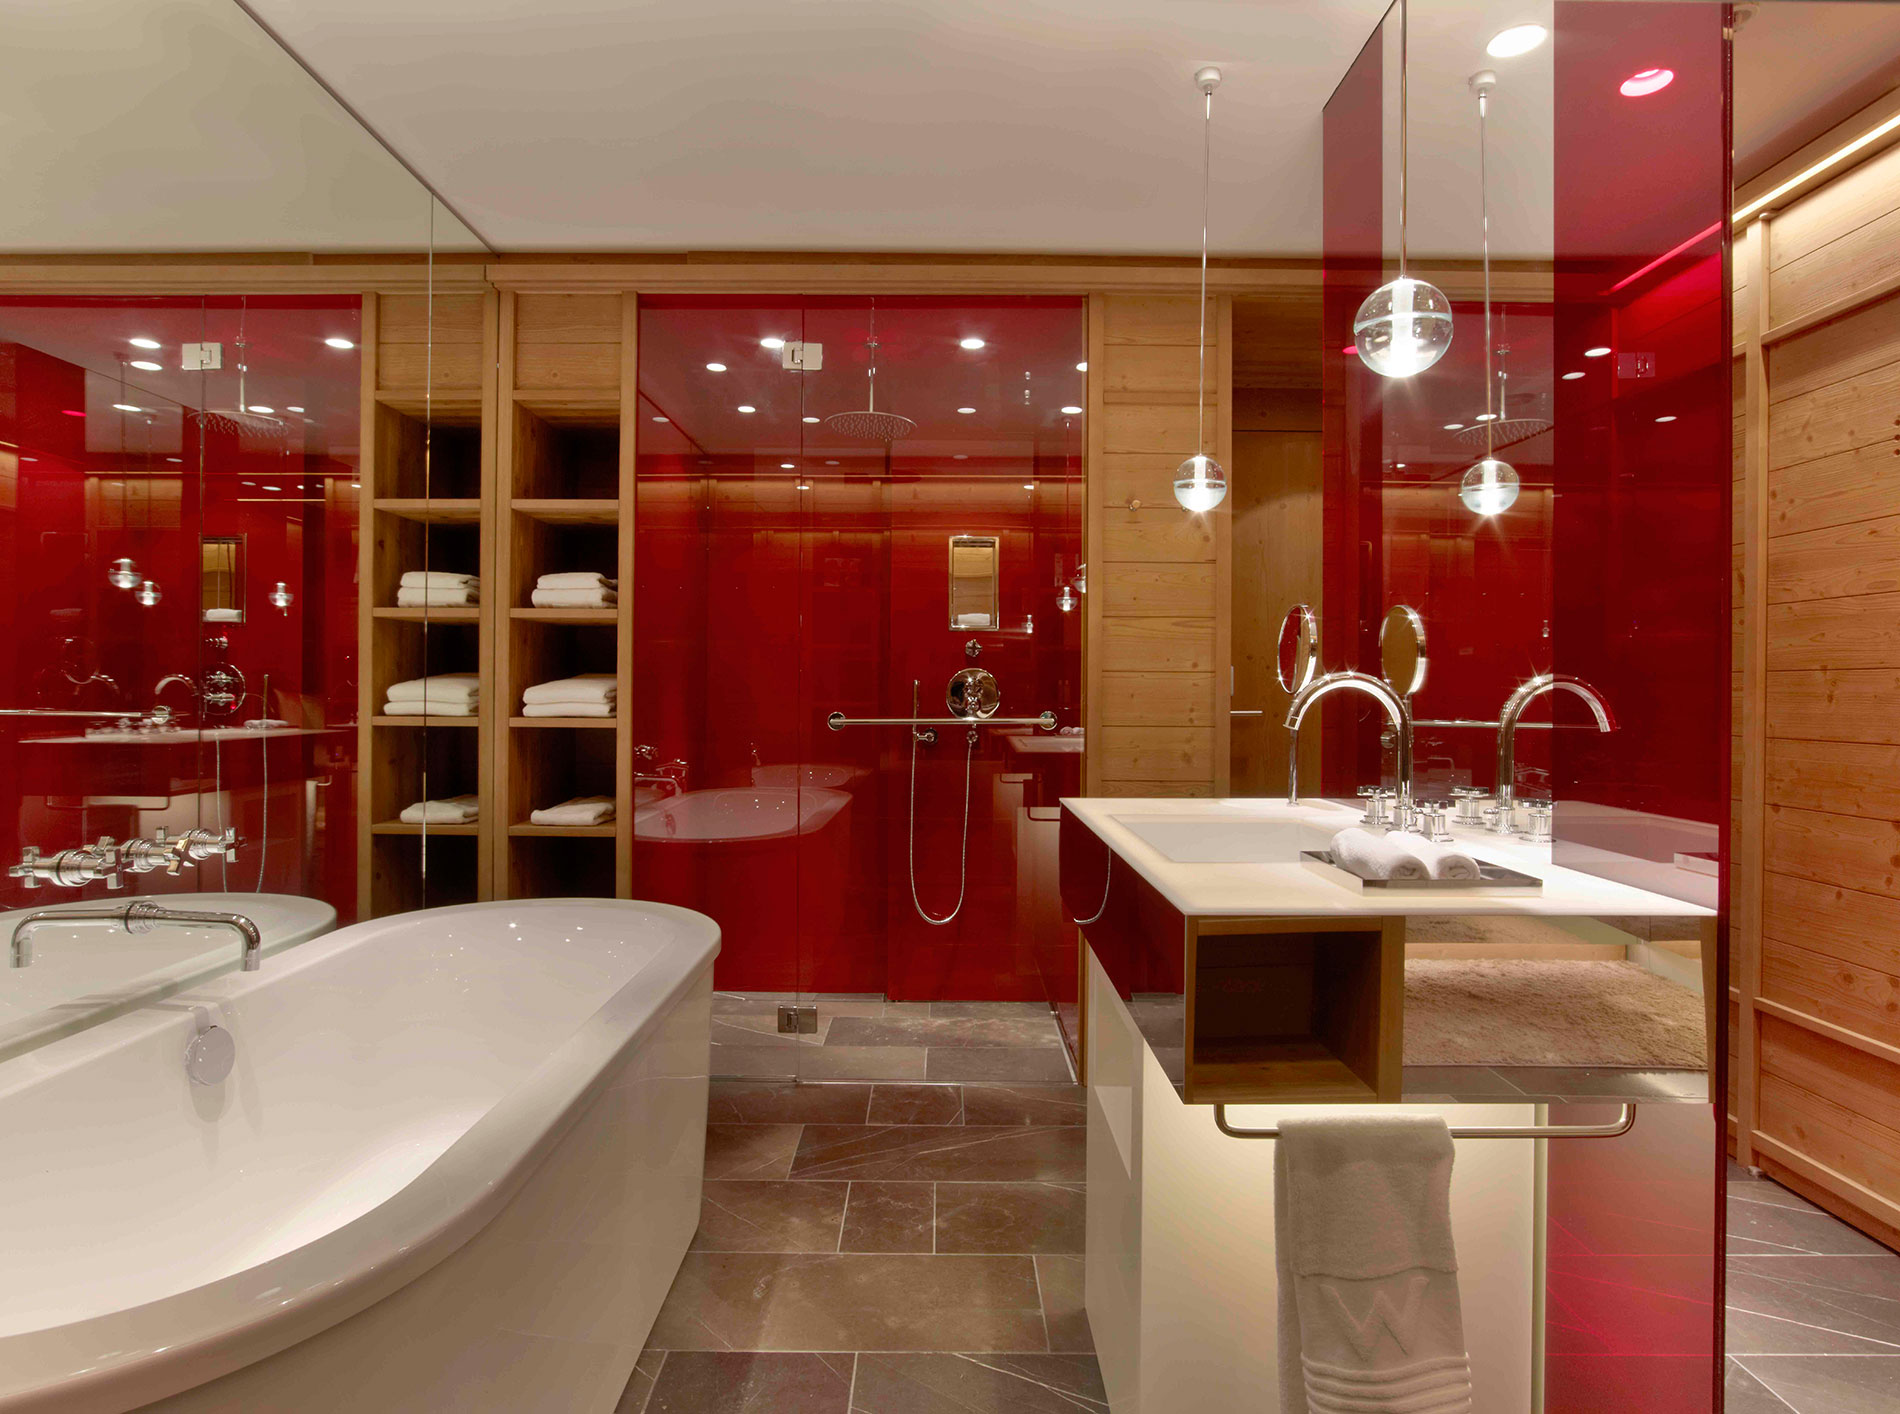 Design miami basel and w hotels worldwide announce the for Bathroom design awards 2013